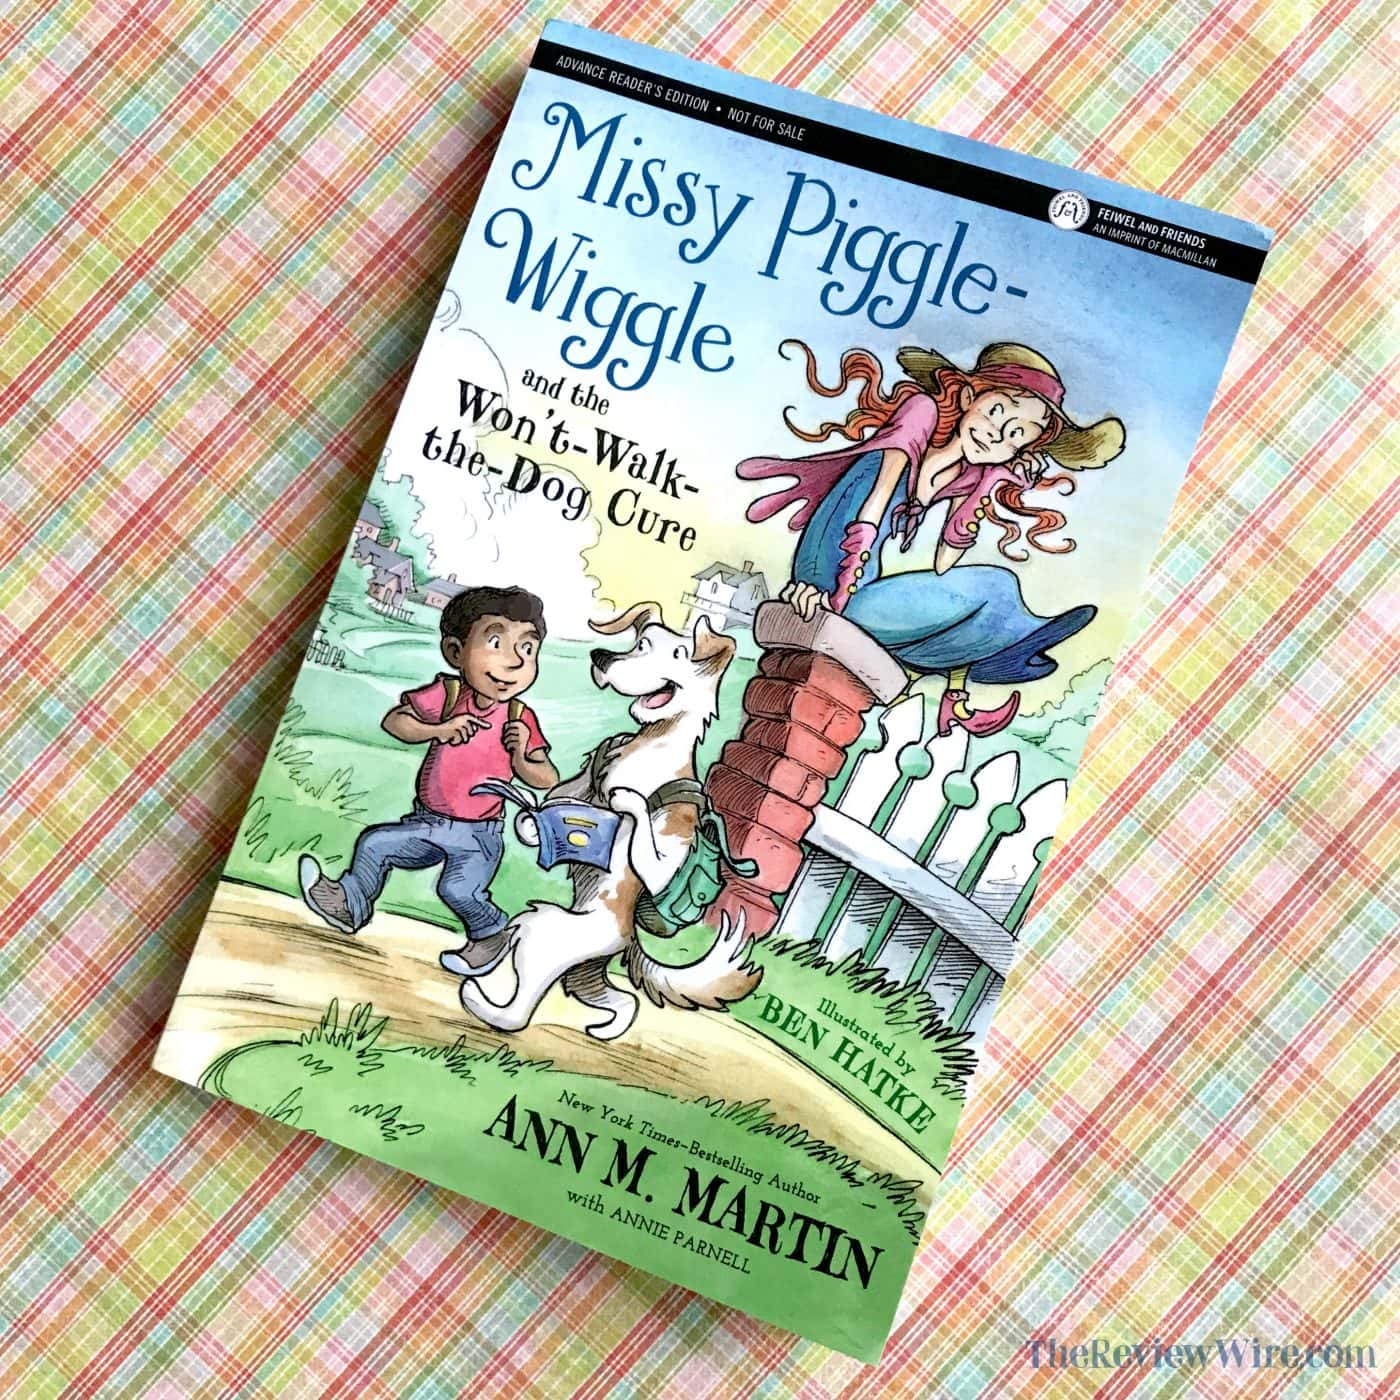 Missy Piggle-Wiggle and the Won't Walk the Dog Cure